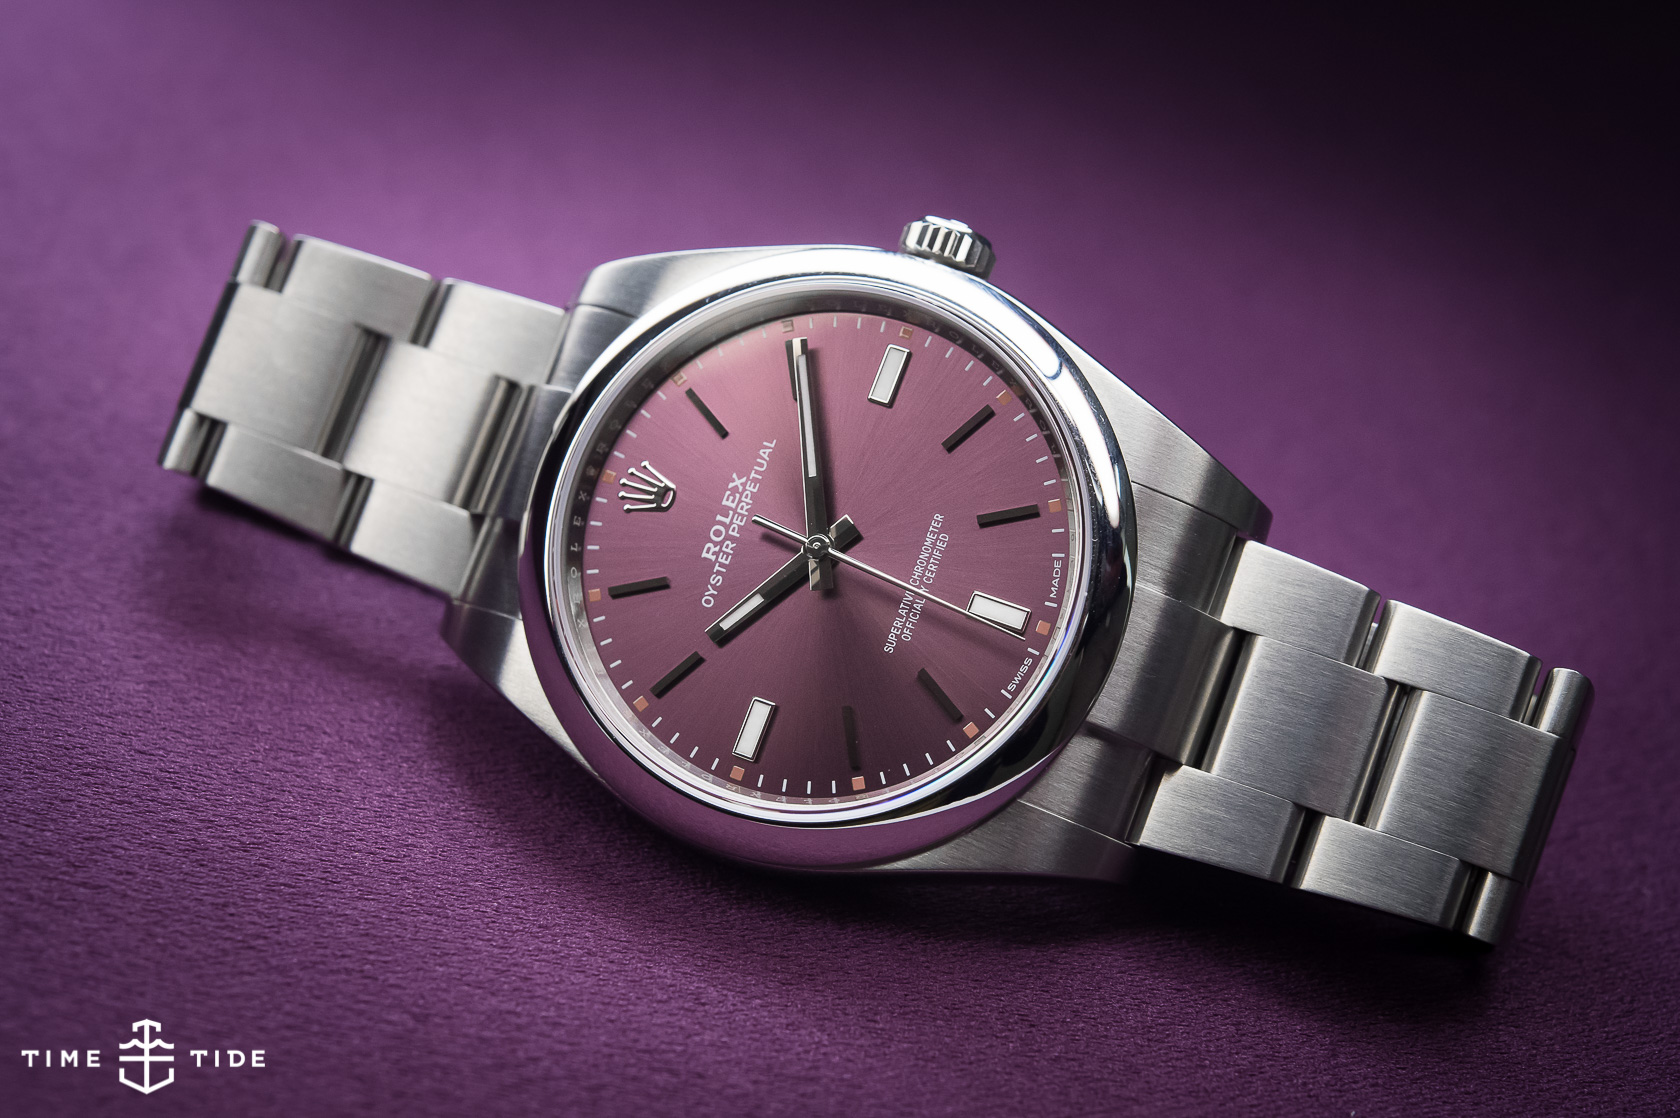 LIST: The Best of Baselworld (as voted by you)